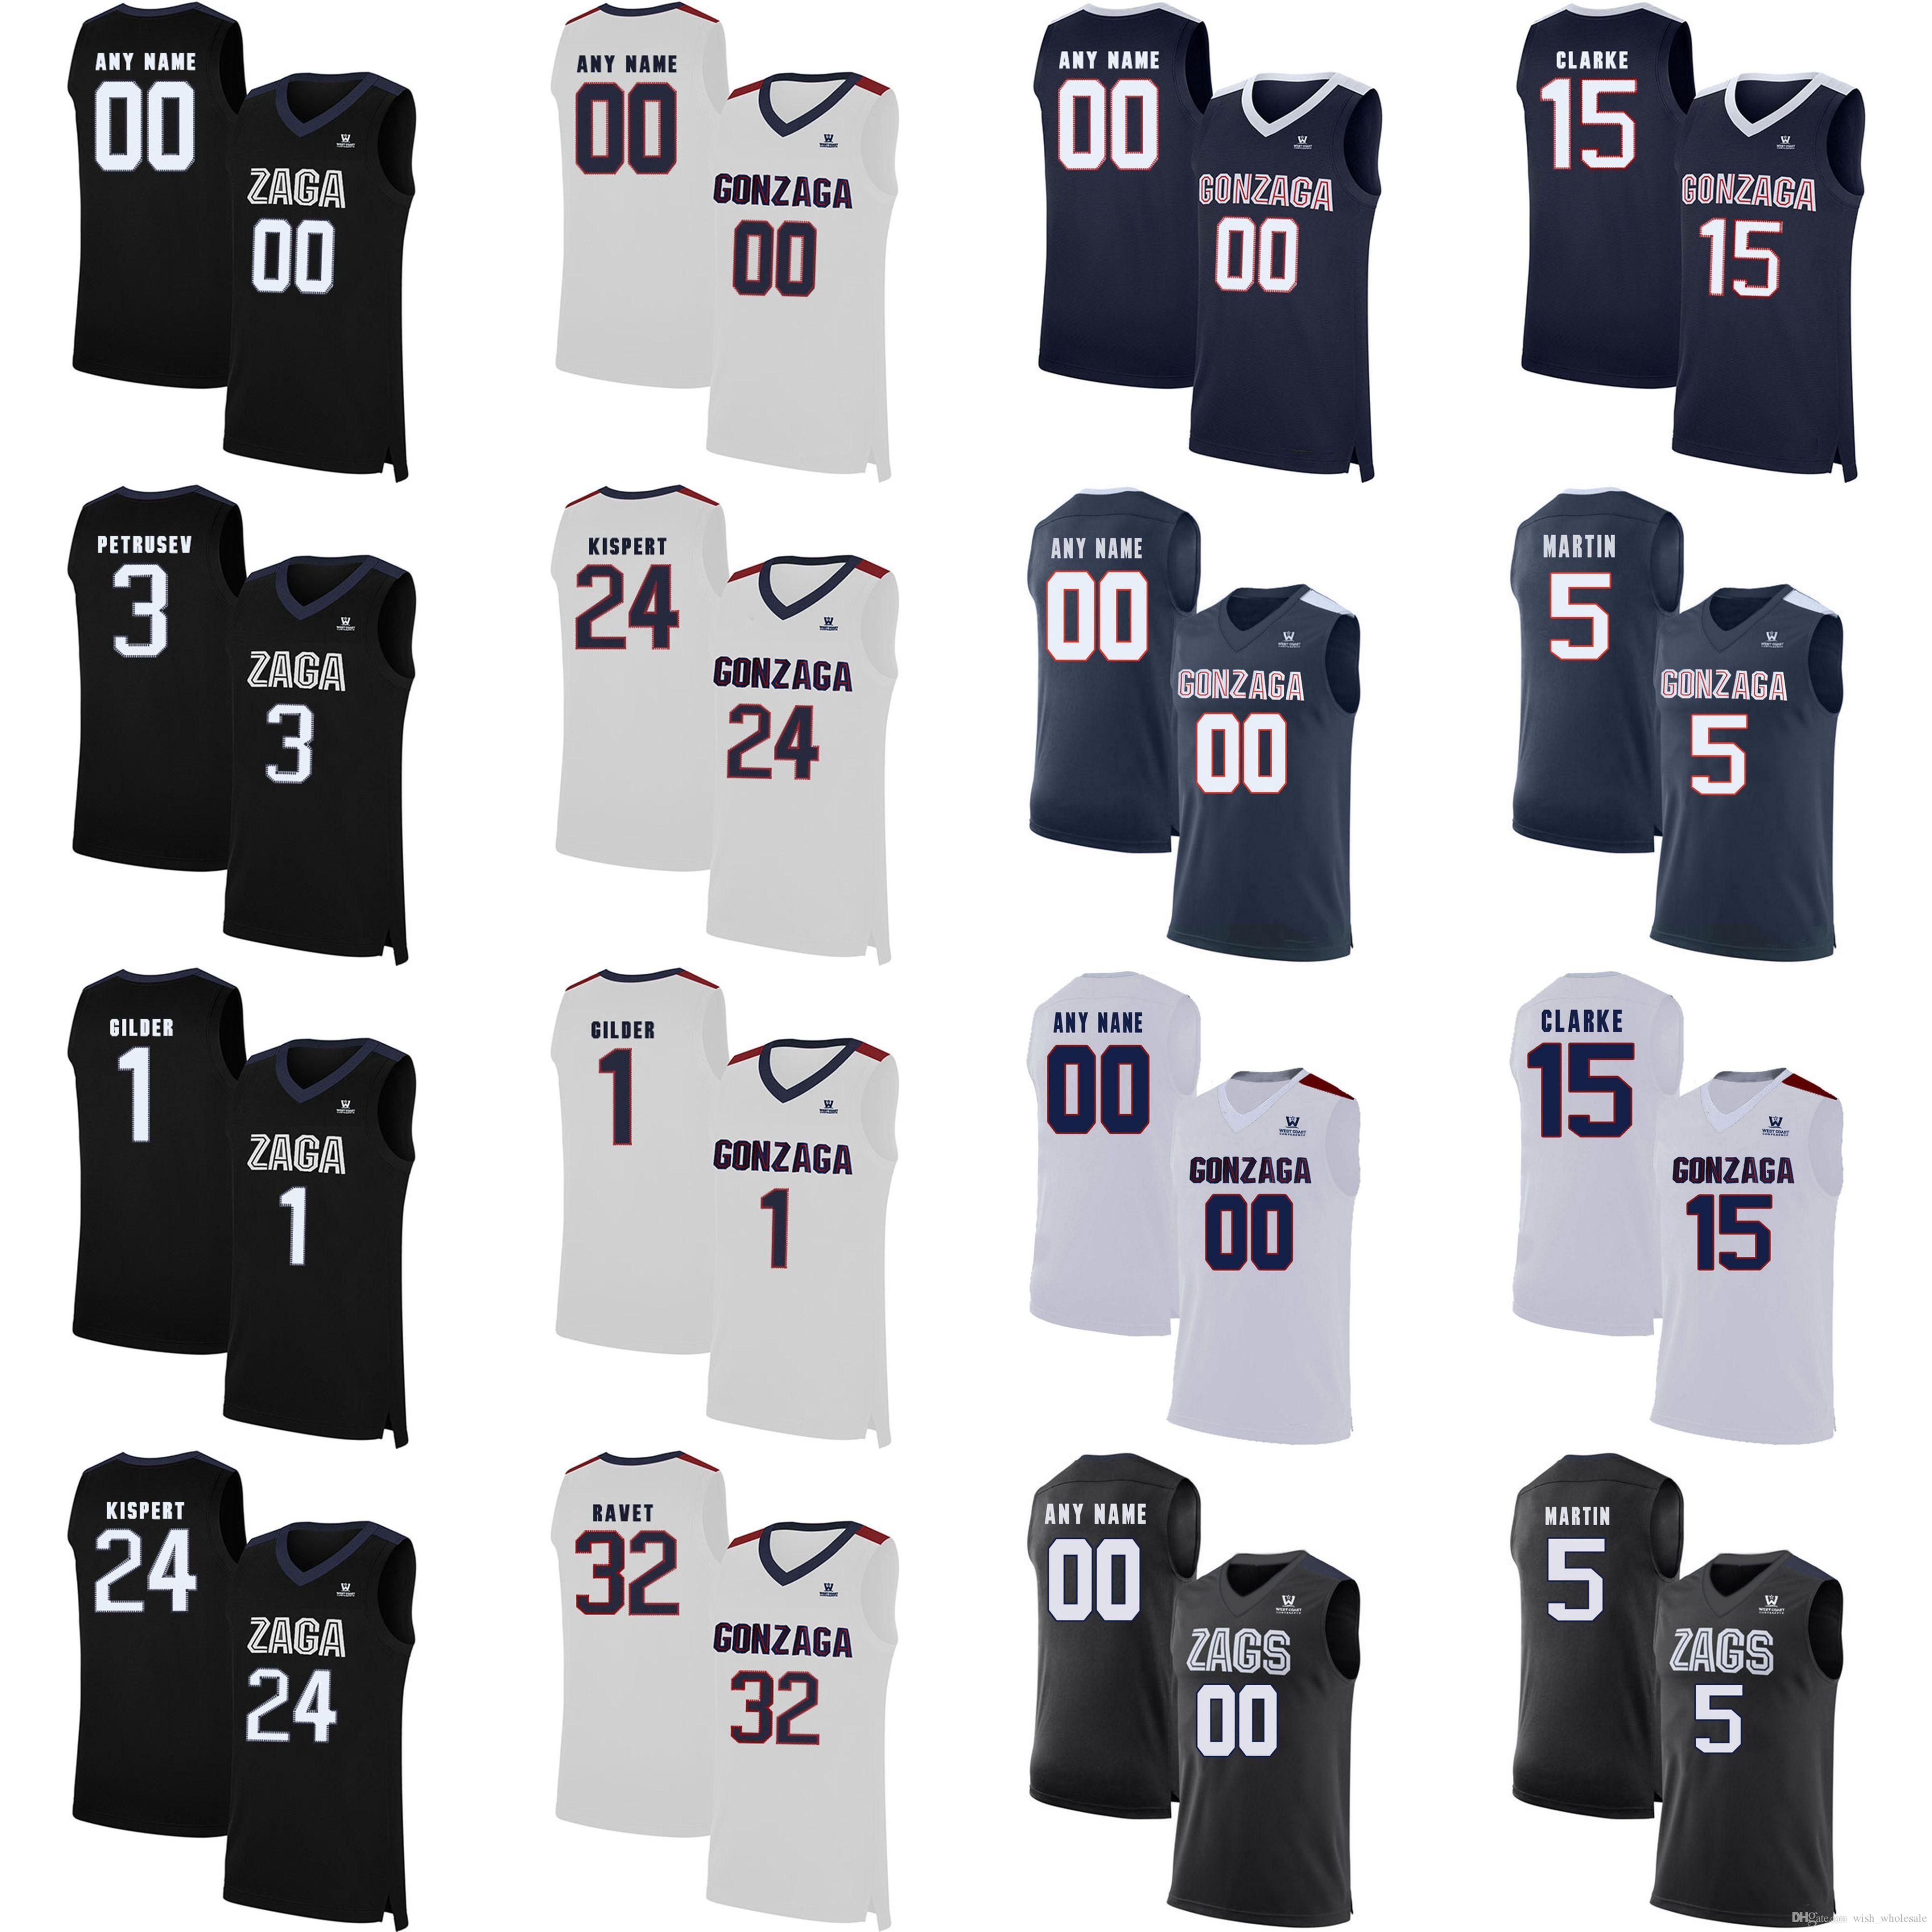 Gonzague Bulldogs College Basketball Maillots Hommes Brandon 15 Clarke Nigel Williams 5-Goss Filip Petrusev Corey Kispert Killian Tillie sur mesure